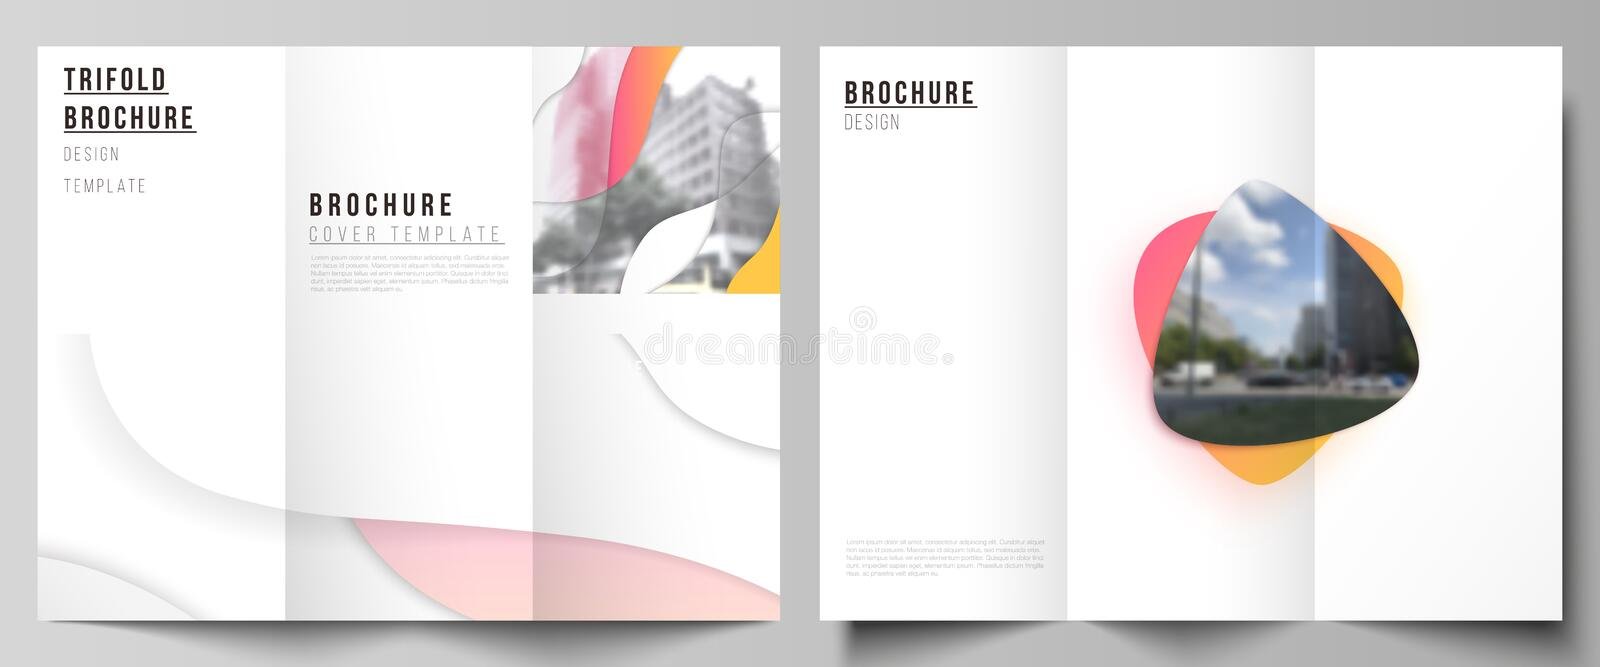 The minimal vector illustration layouts. Modern creative covers design templates for trifold brochure or flyer. Yellow. Color gradient abstract dynamic shapes stock illustration